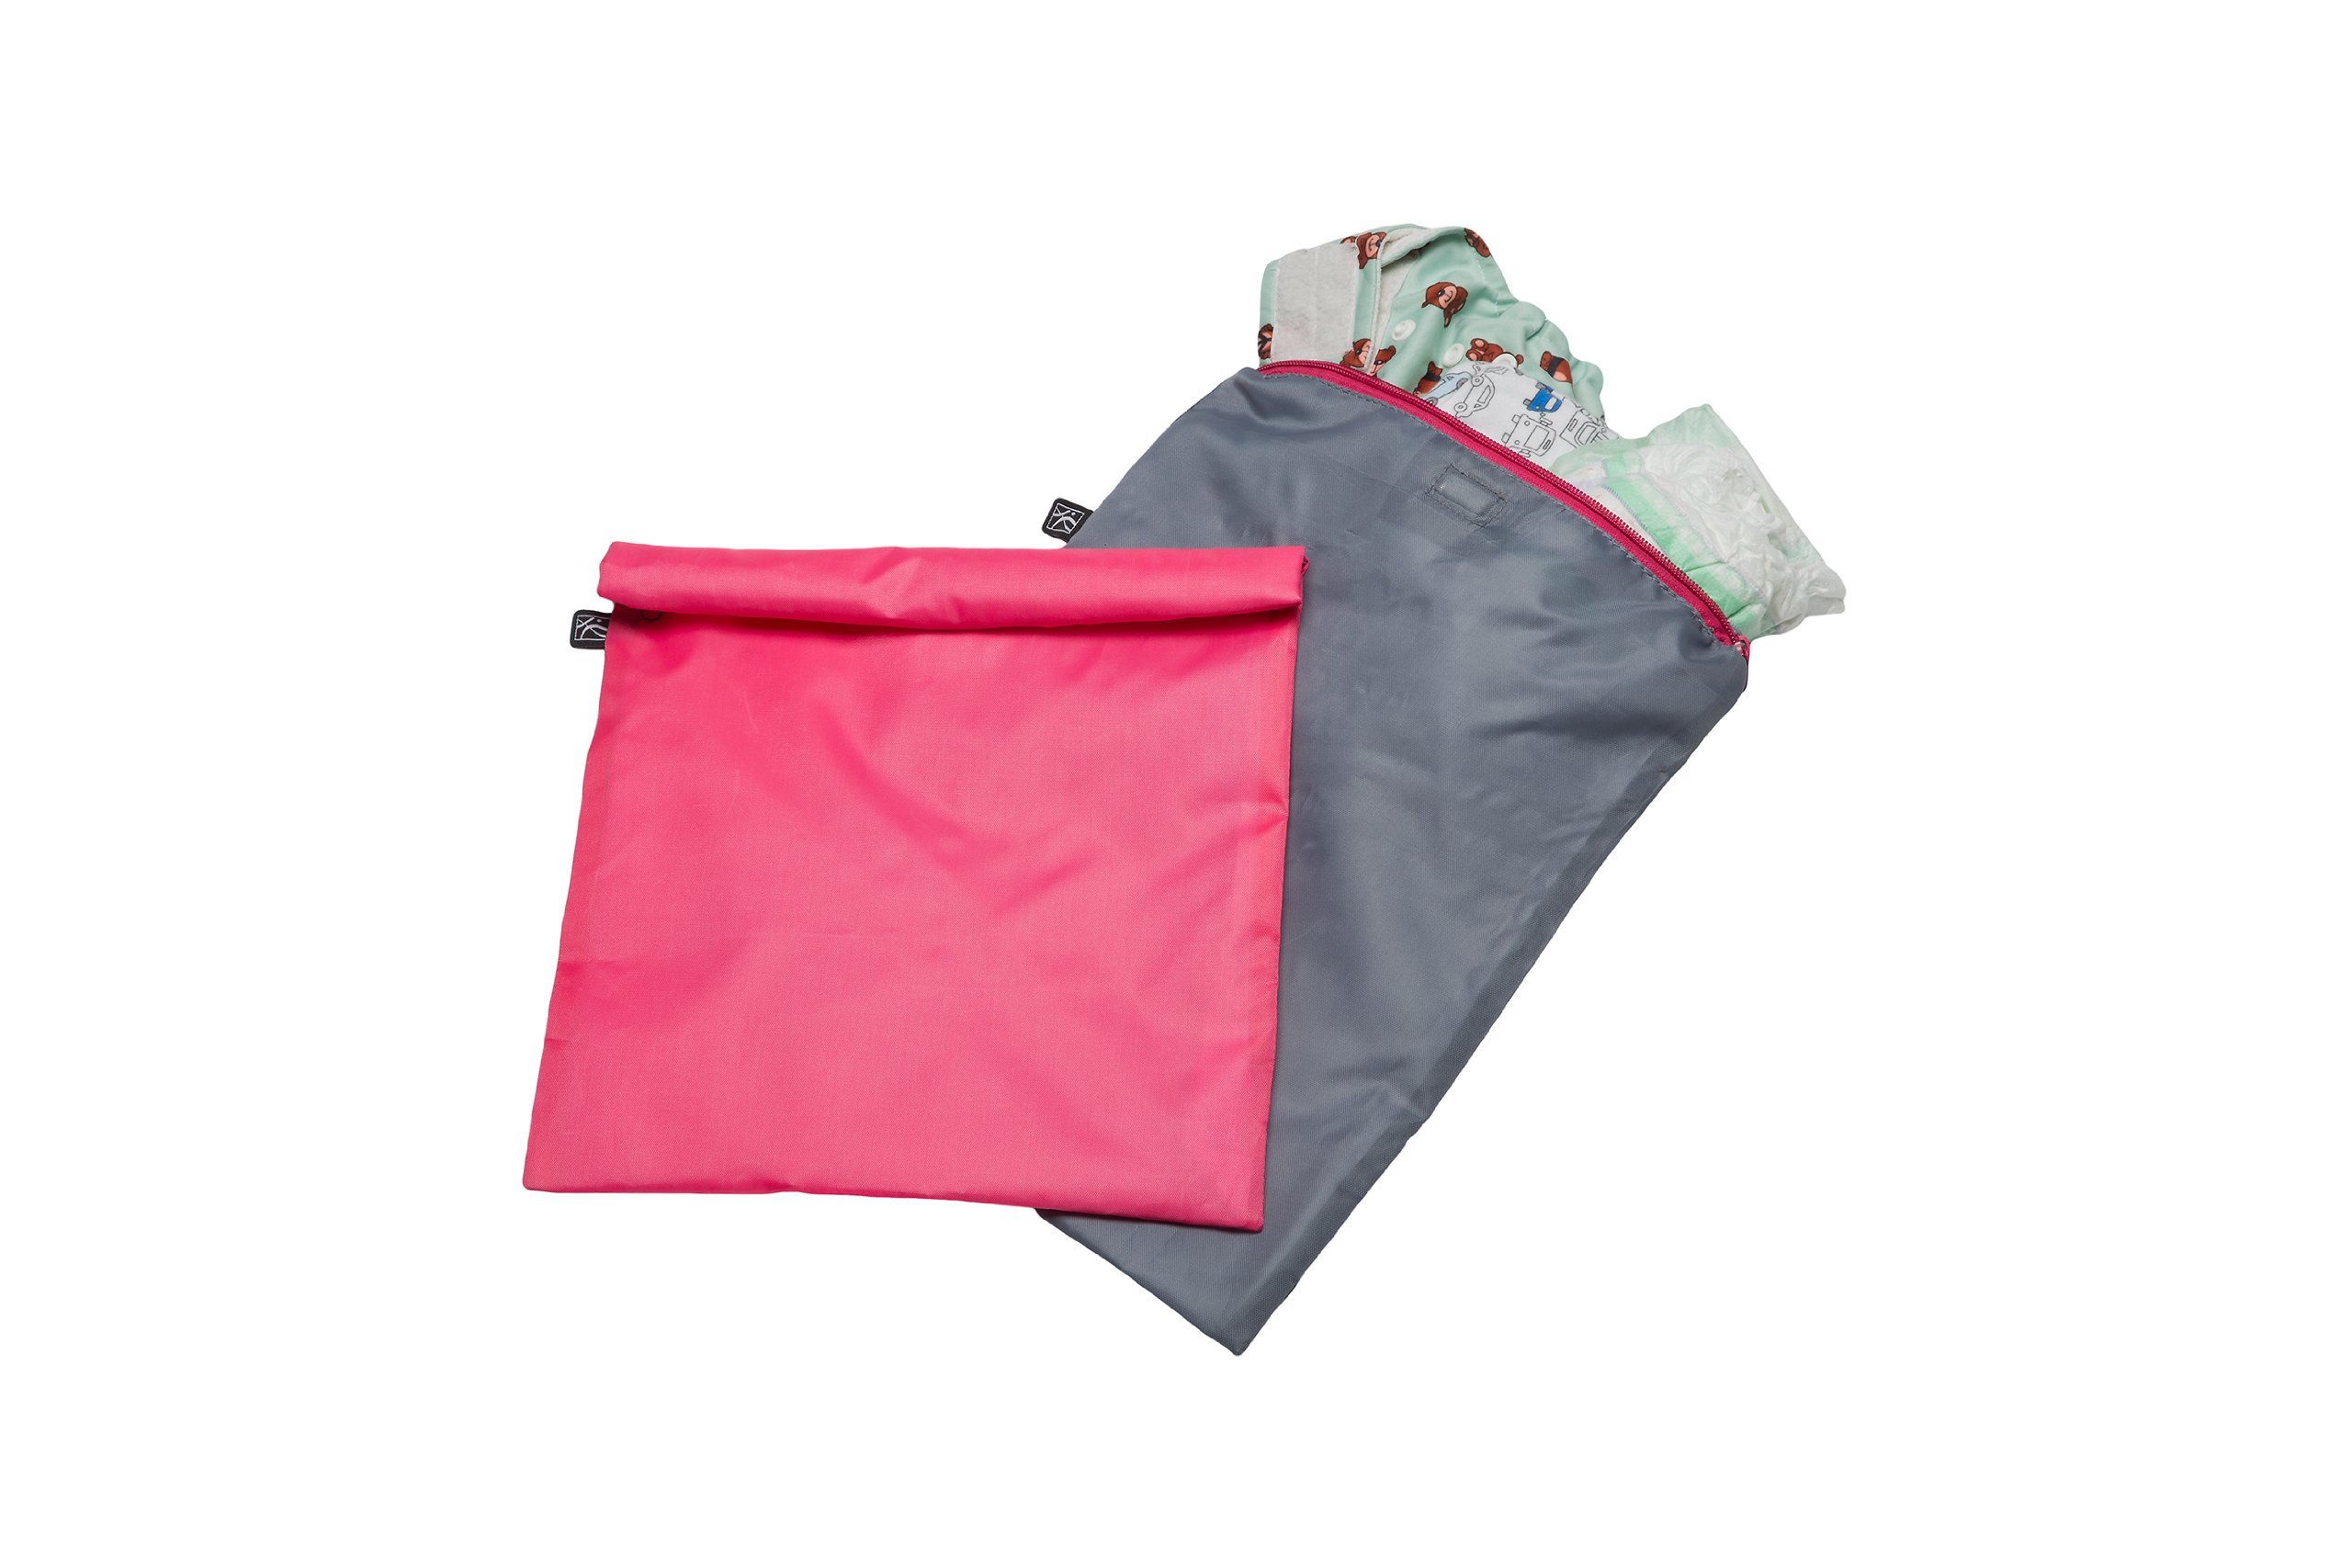 J.L. Childress Wet-to-Go Portable Wet and Dry Bags, Waterproof and Leakproof, Machine-Washable, Reusable for Cloth Diapers, Wet Clothes, Swimsuits, and More. 2 Pack, Pink/Grey